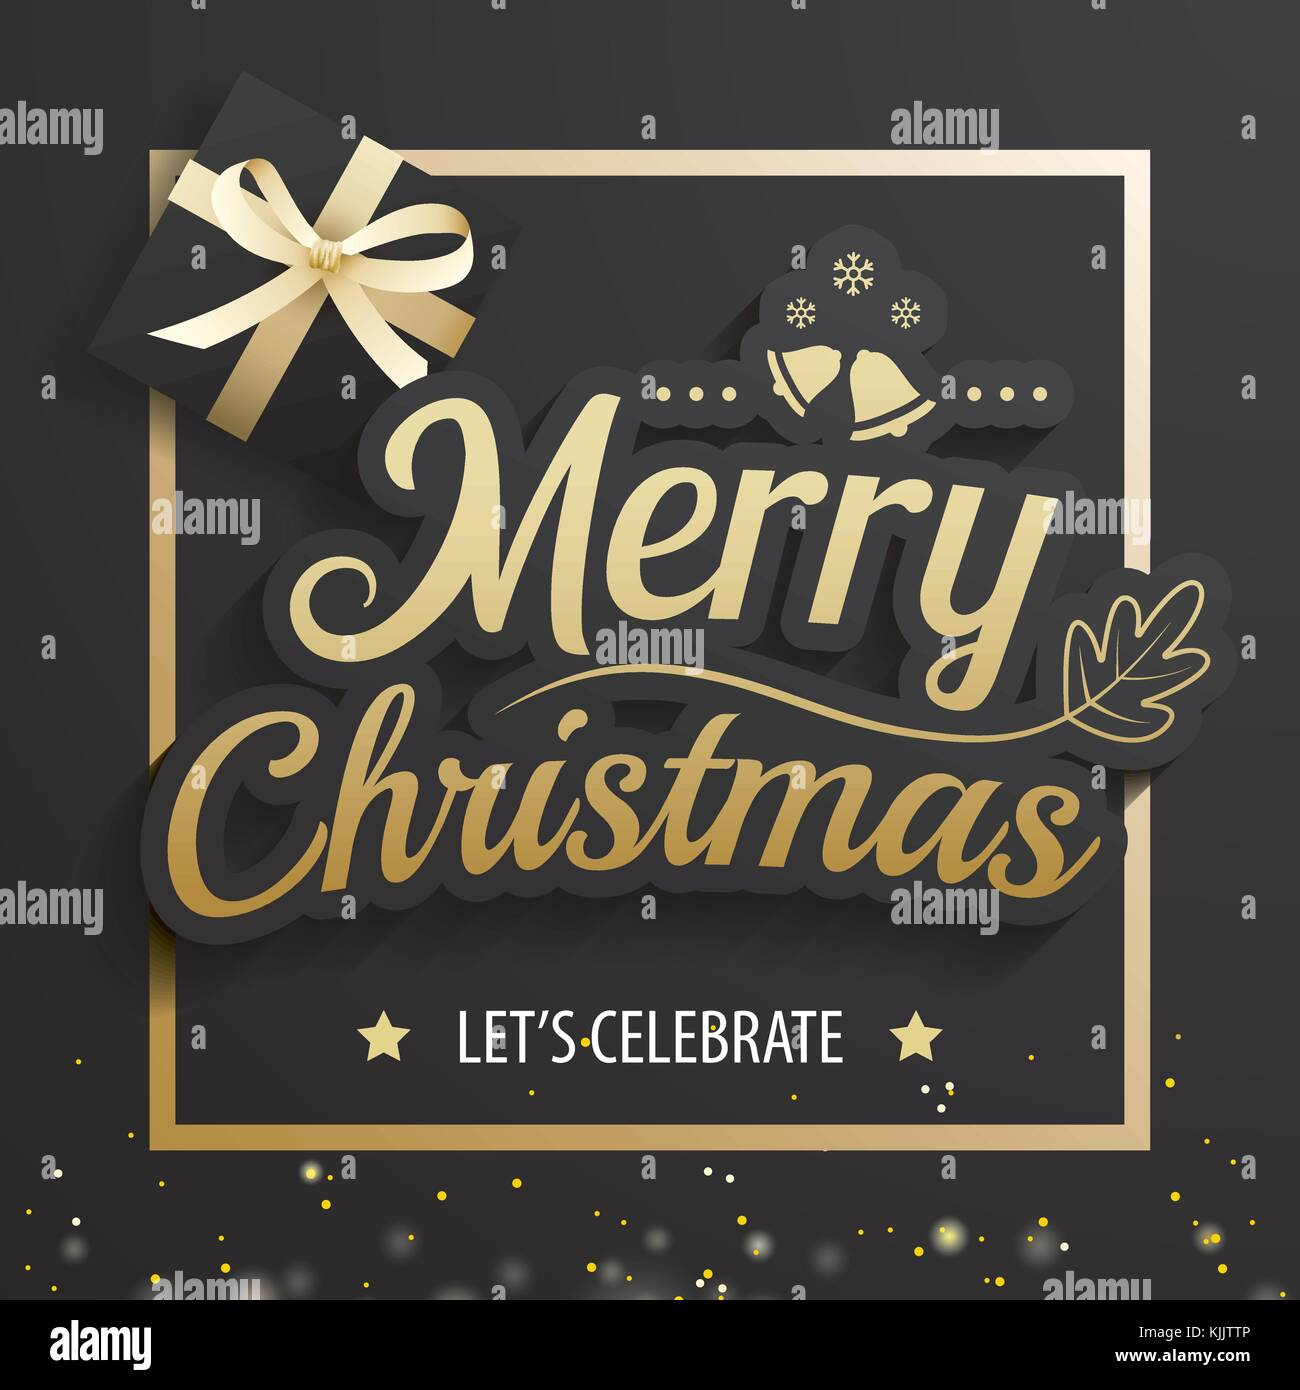 merry christmas greeting card and party invitations on black background vector illustration element for happy new year design